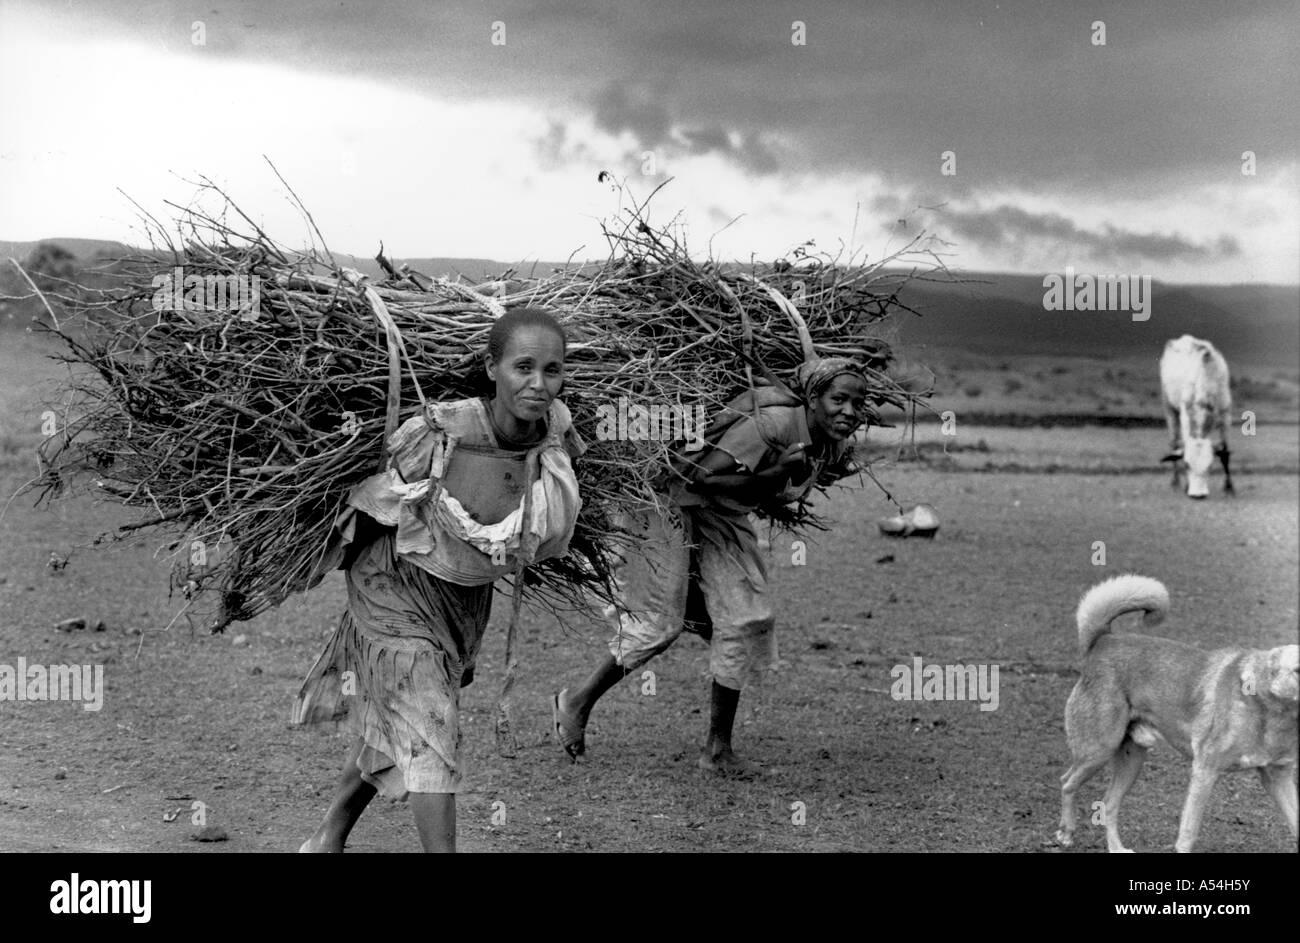 Painet hq1494 black and white labor women carrying firewood eritrea images bw country developing nation less economically - Stock Image